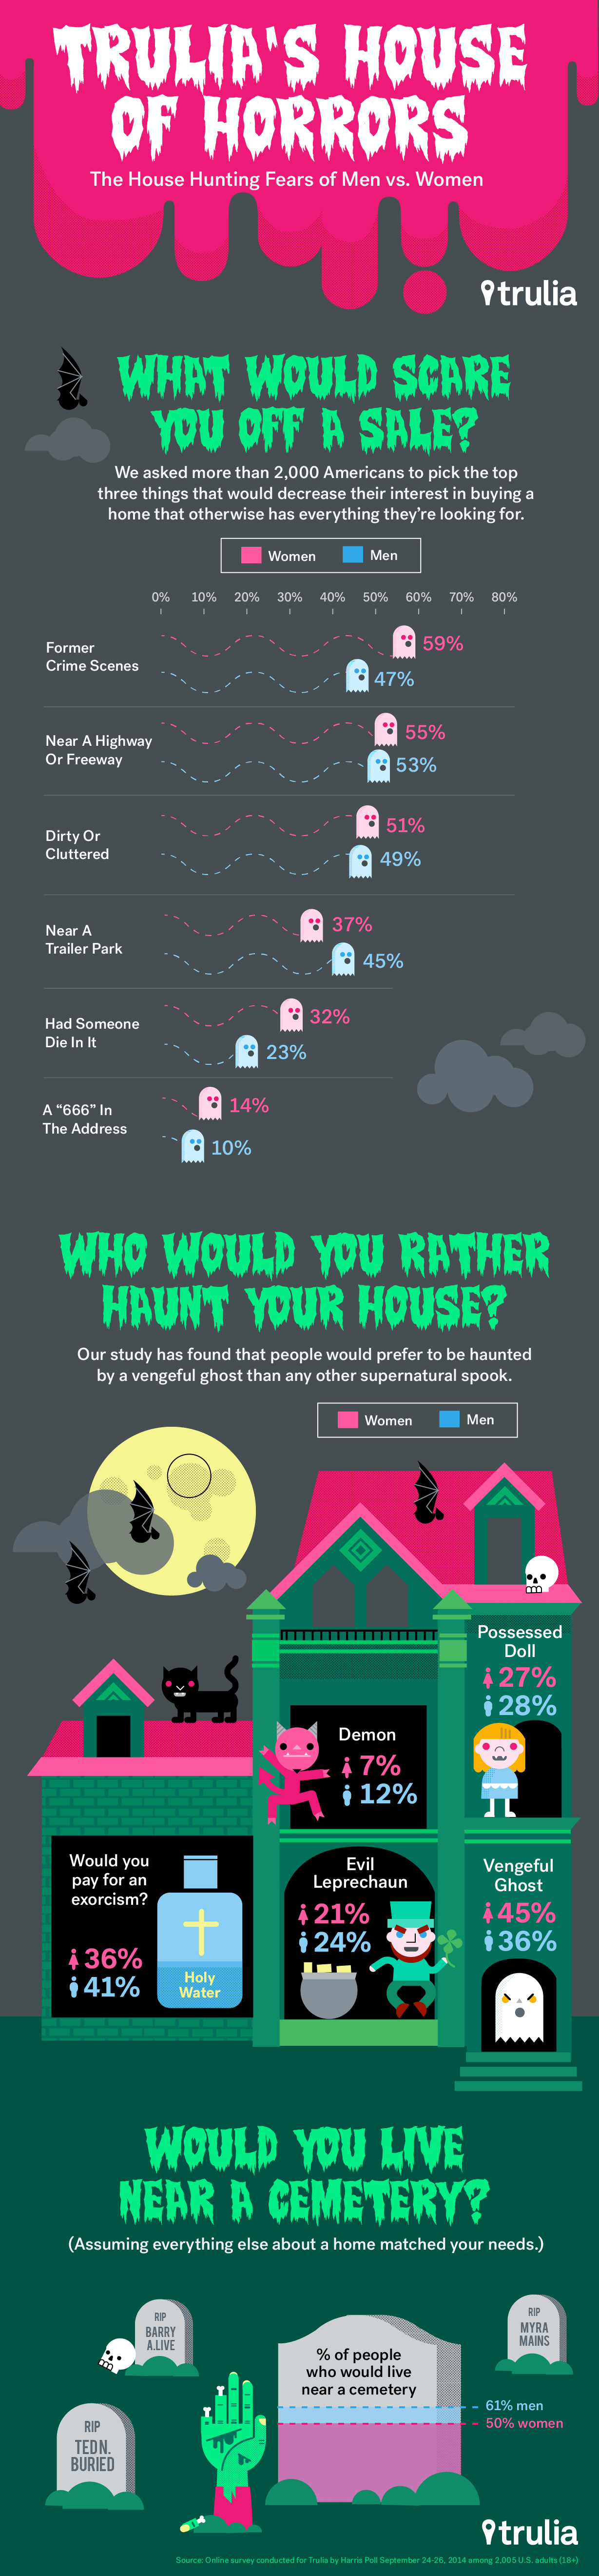 trulia house of horrors